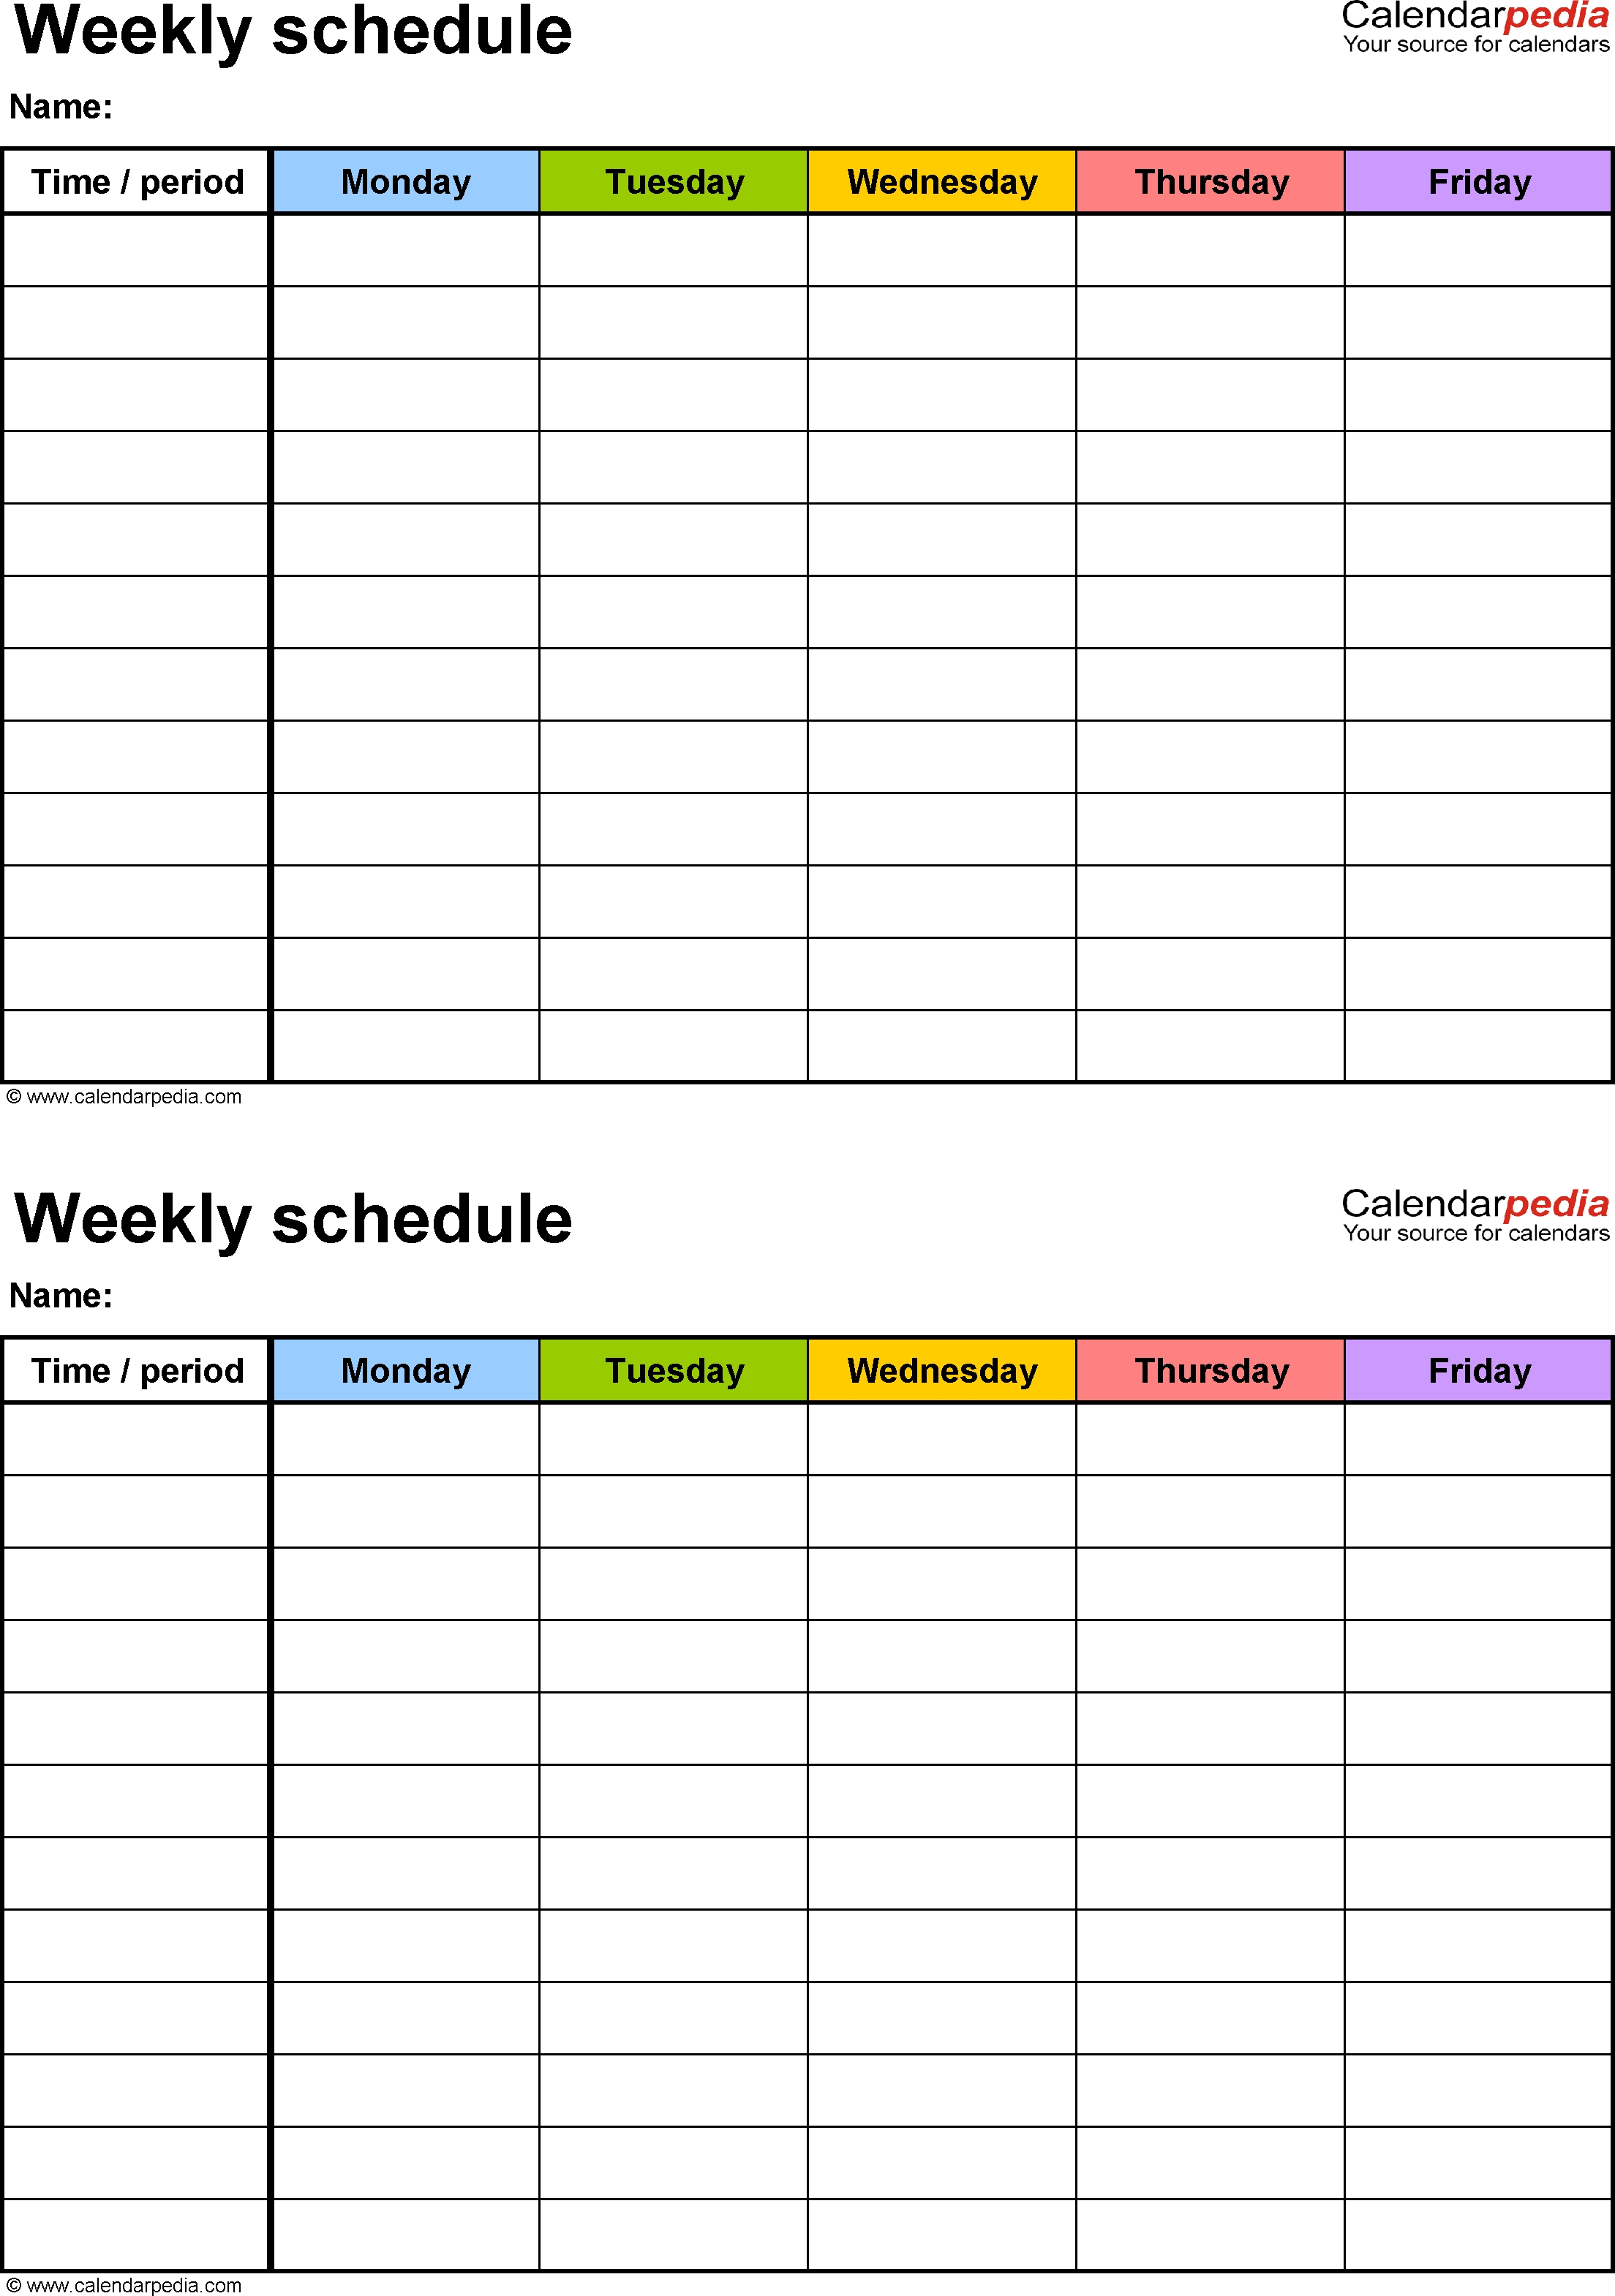 Weekly Schedule Template For Excel Version 3: 2 Schedules On